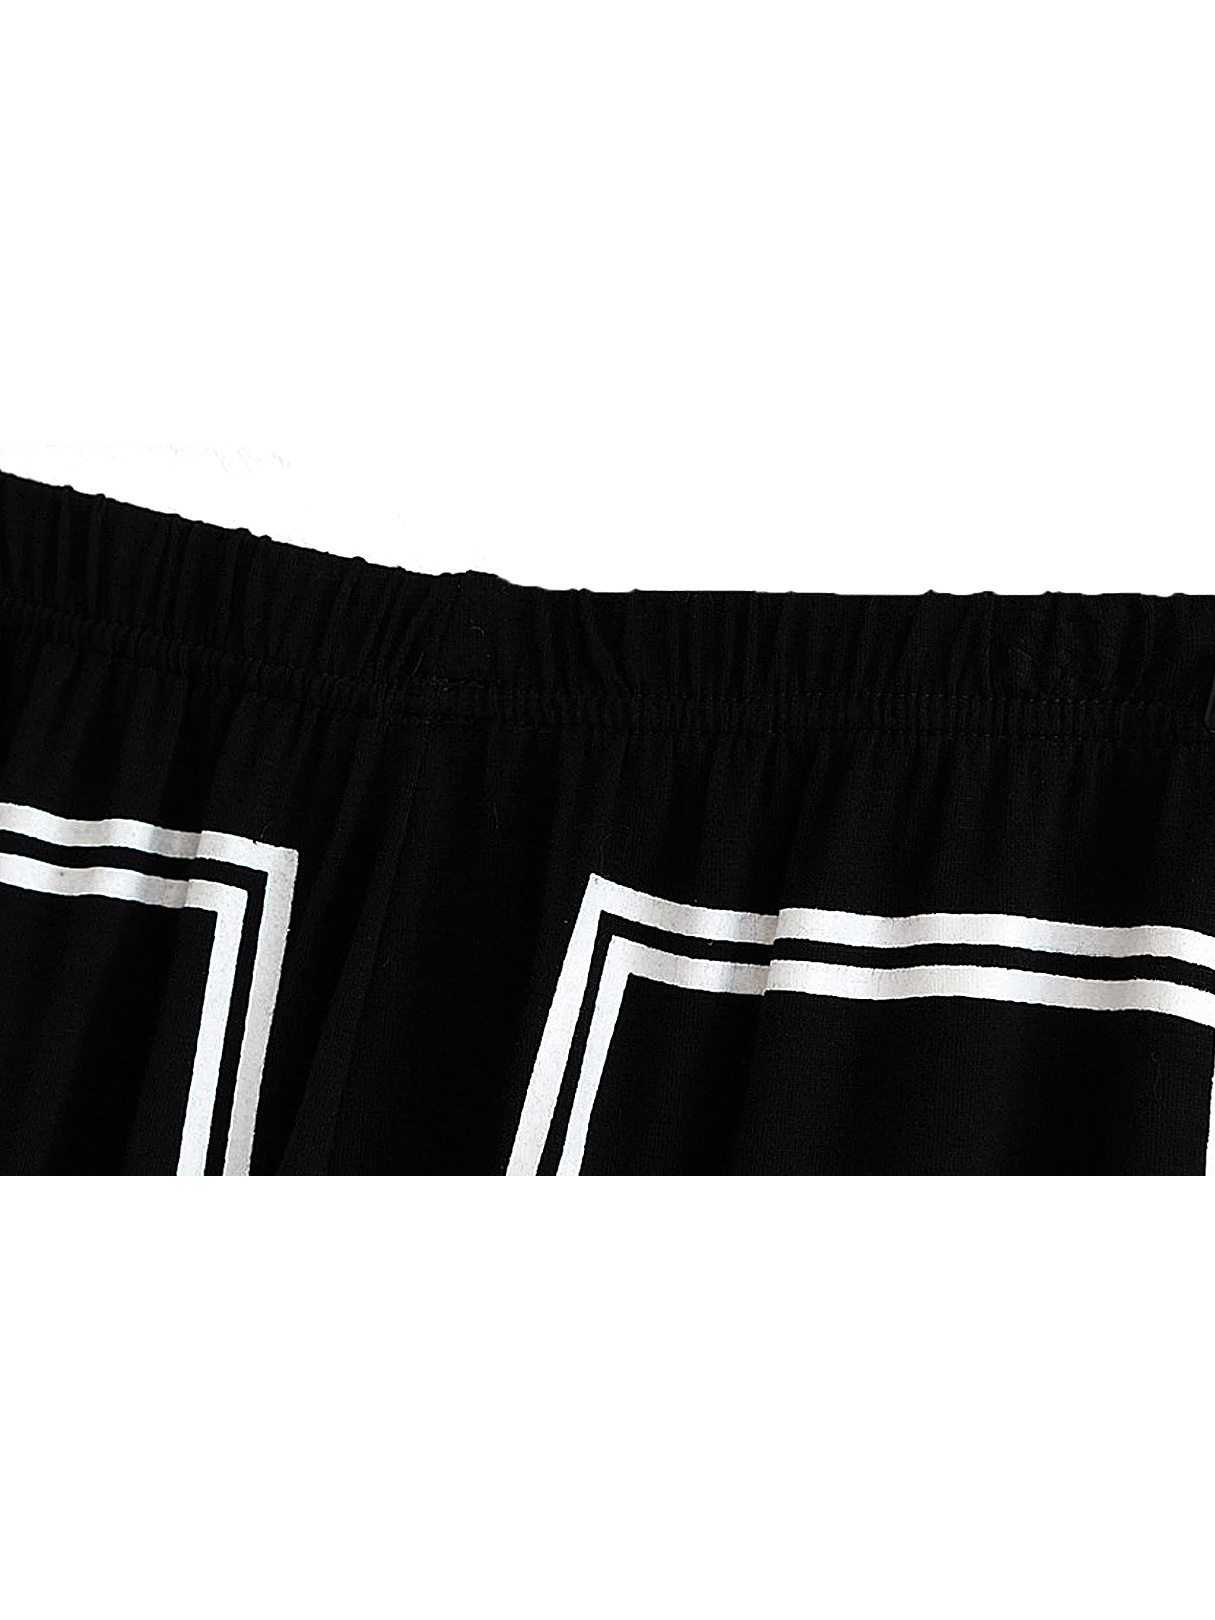 Black Stretchy Legging with White Line Pattern от Yoins.com INT